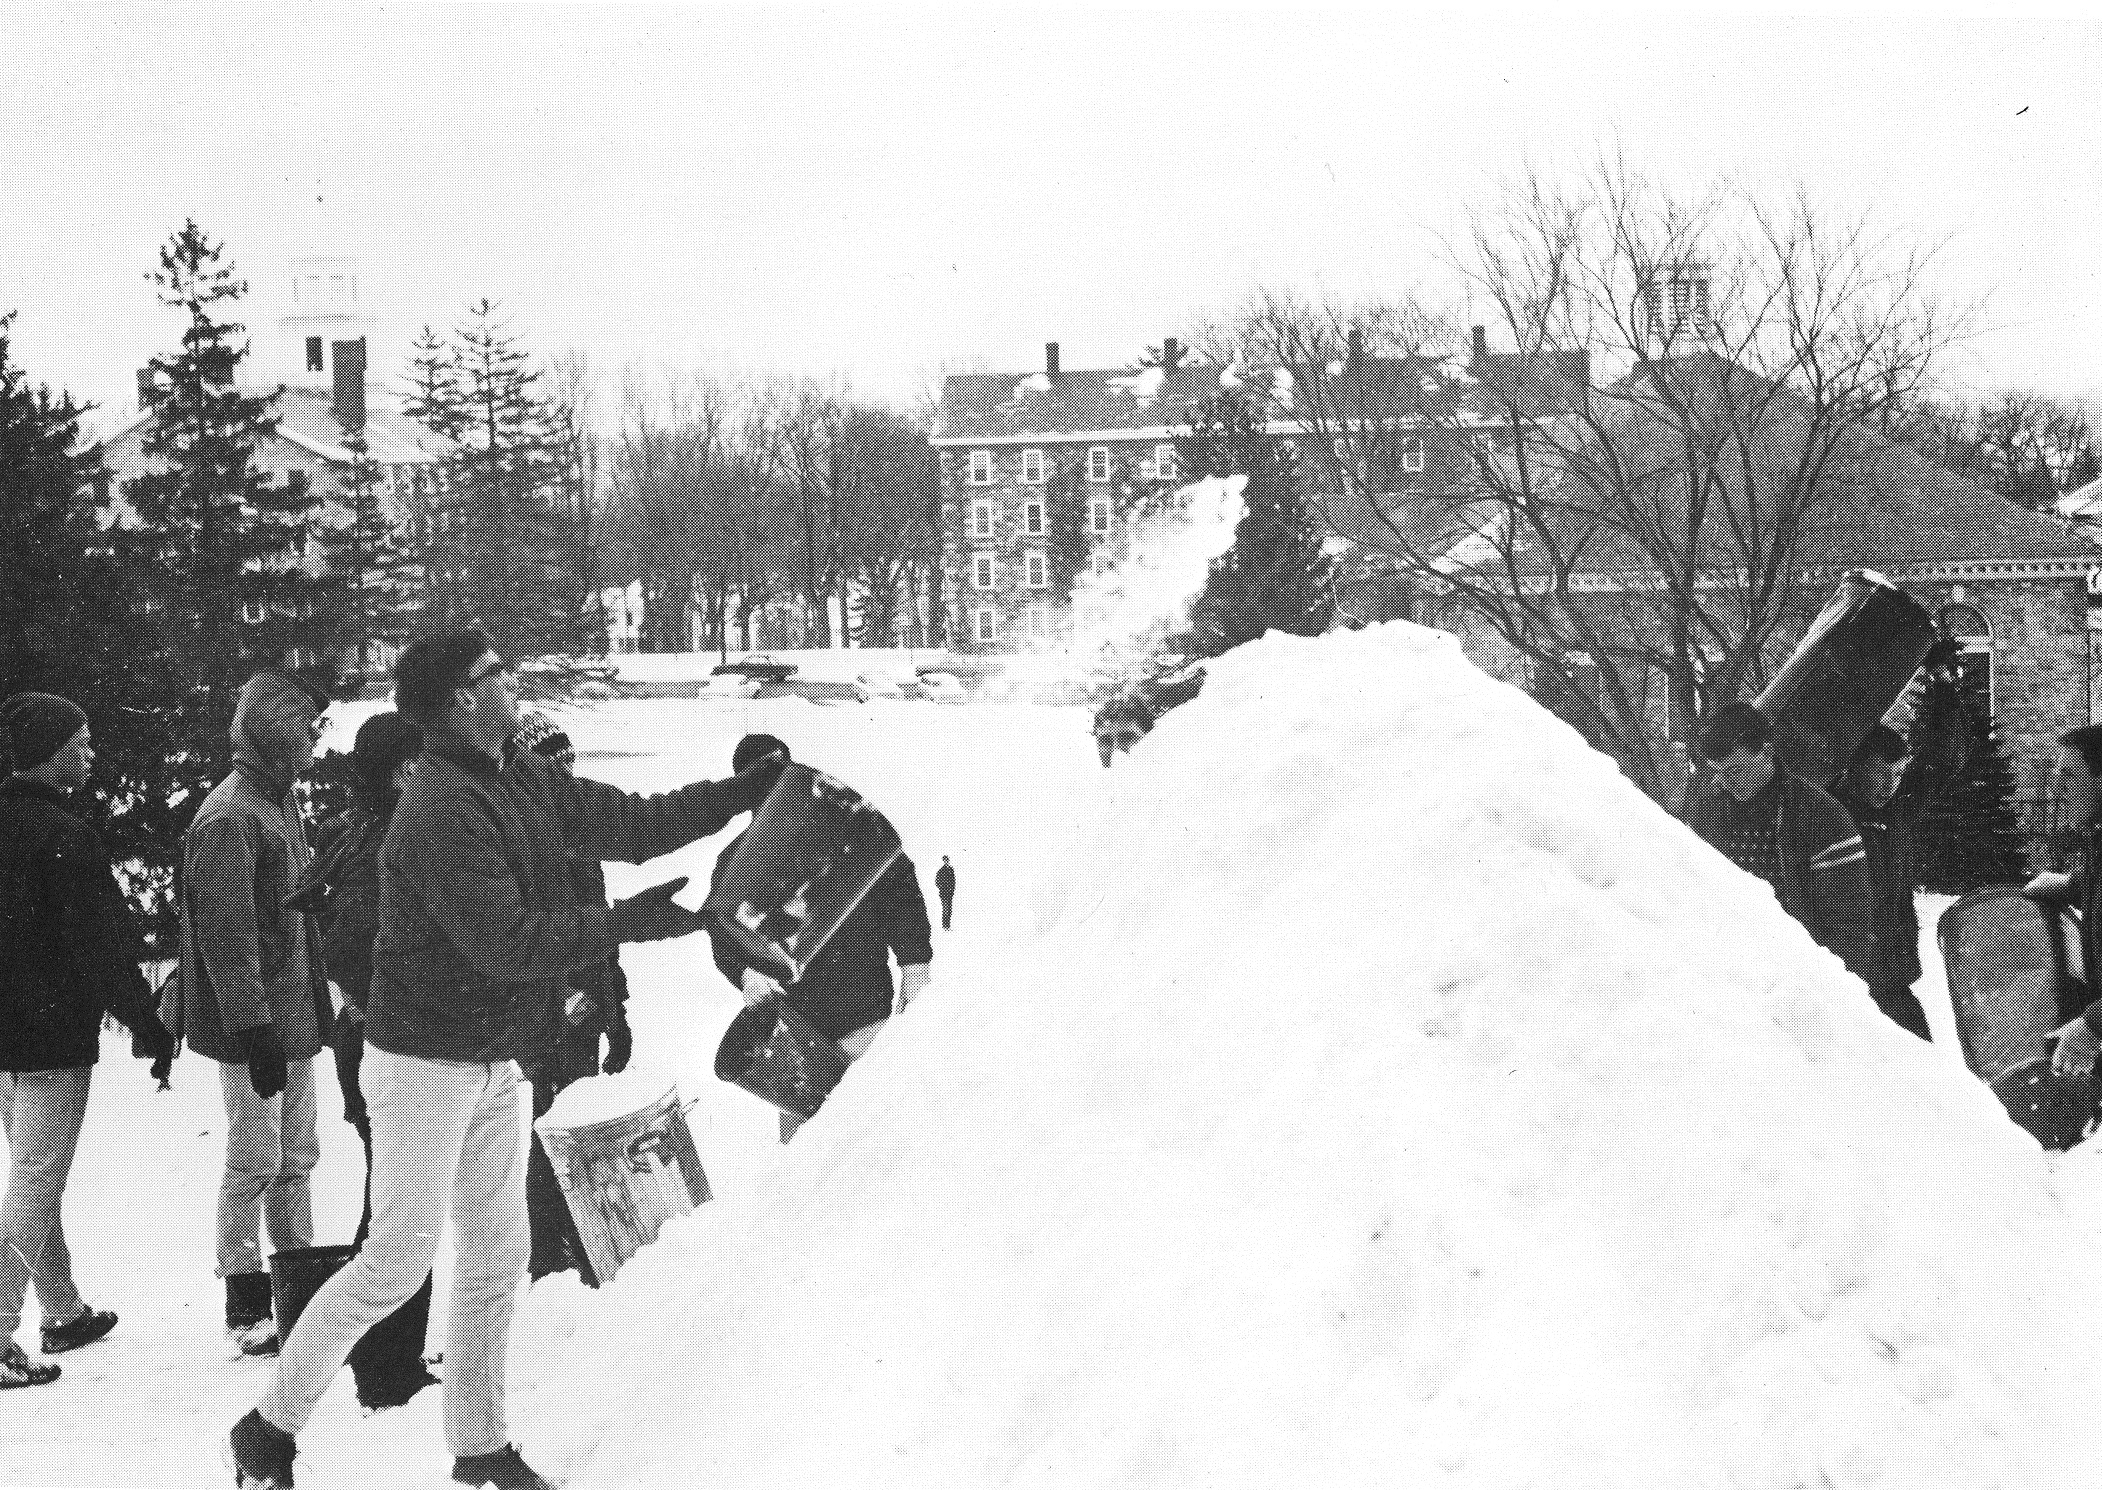 Making a snow pile, 1964